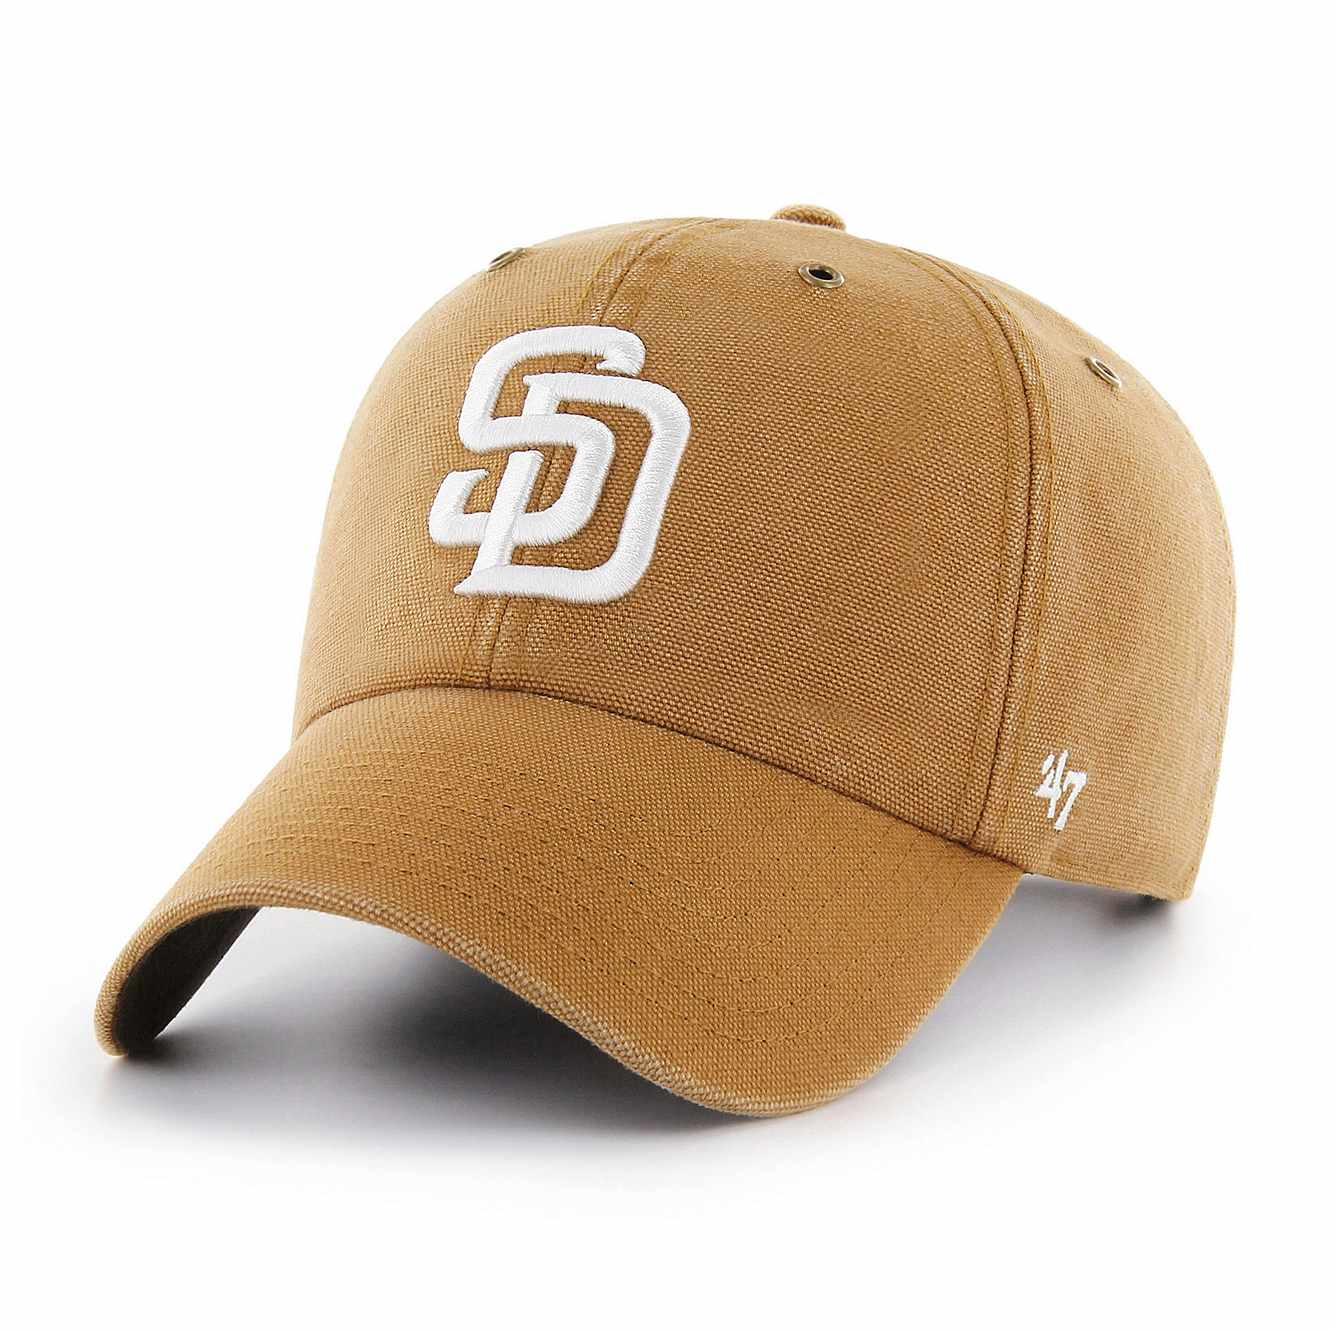 Picture of San Diego Padres Carhartt x '47 Clean Up in Carhartt Brown